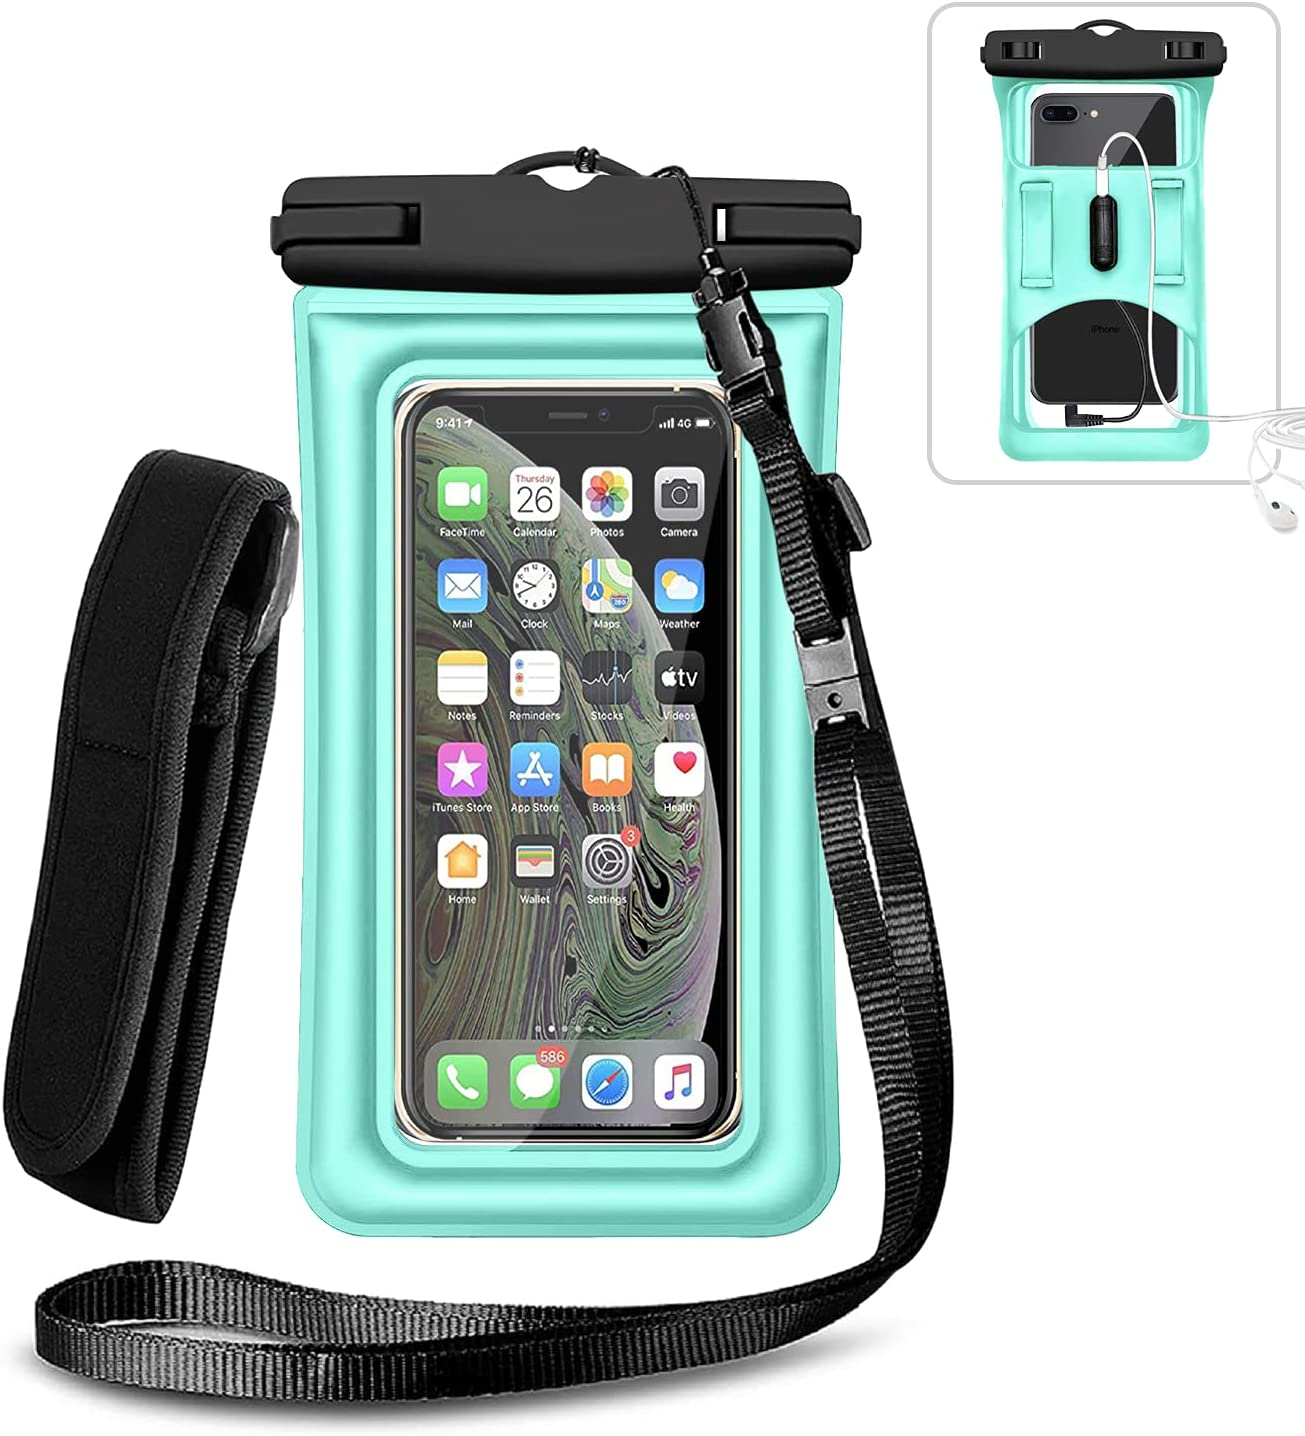 Weuiean Floating Waterproof Phone Case, Waterproof Phone Bag with Armband Jack, Adjustable Lanyard Phone Dry Bag for iPhone 12/11/SE/XS/XR/8/7/6Plus, Samsung S21/20/10/10+ up to 6.5 inch - Mint Green